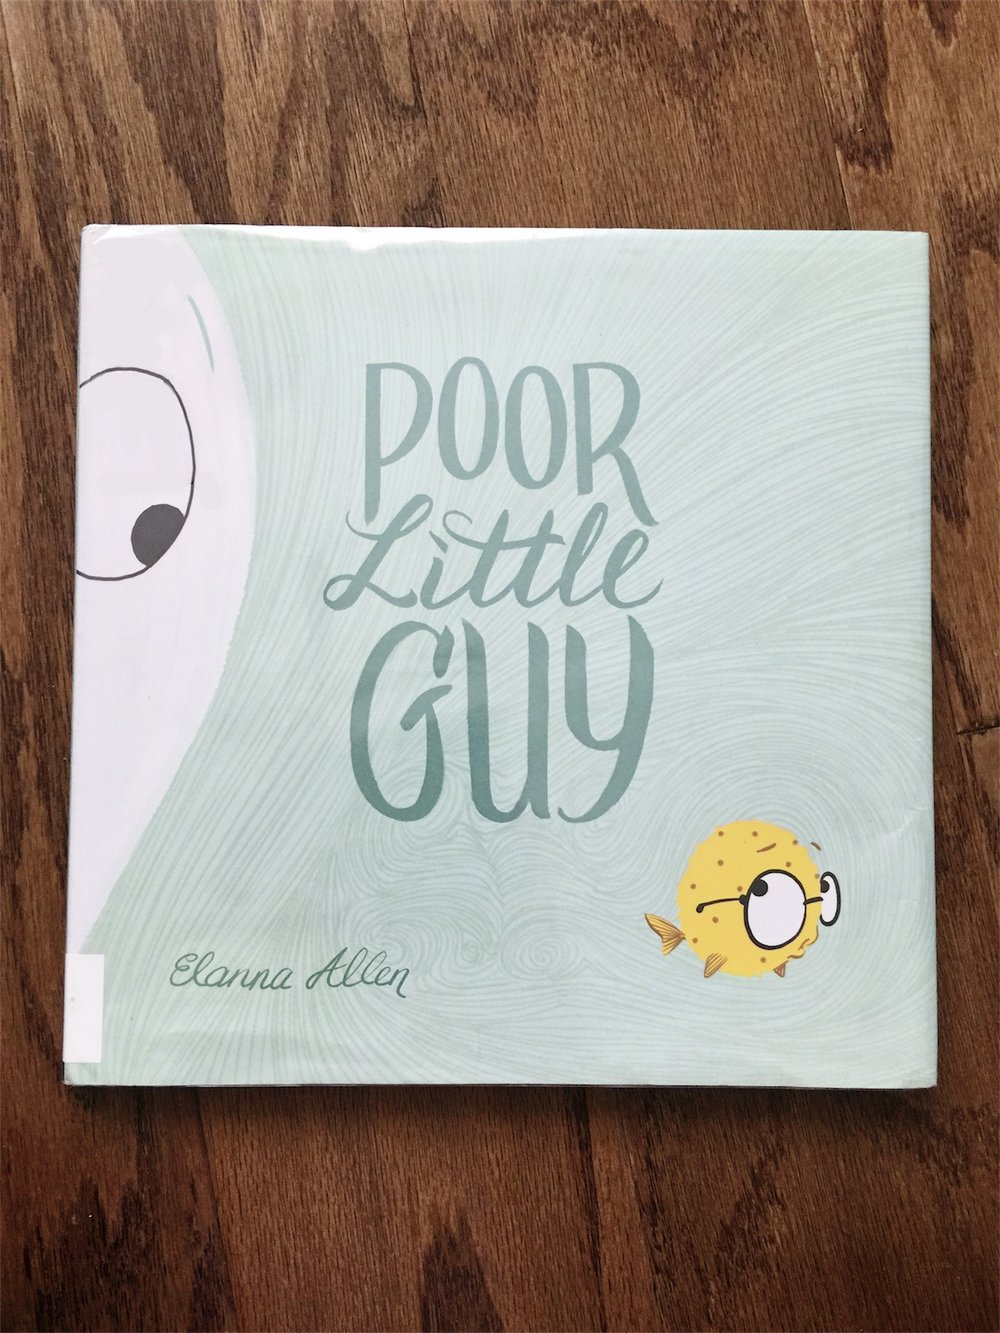 Poor Little Guy, by Ellana Allen - best illustrated children's books